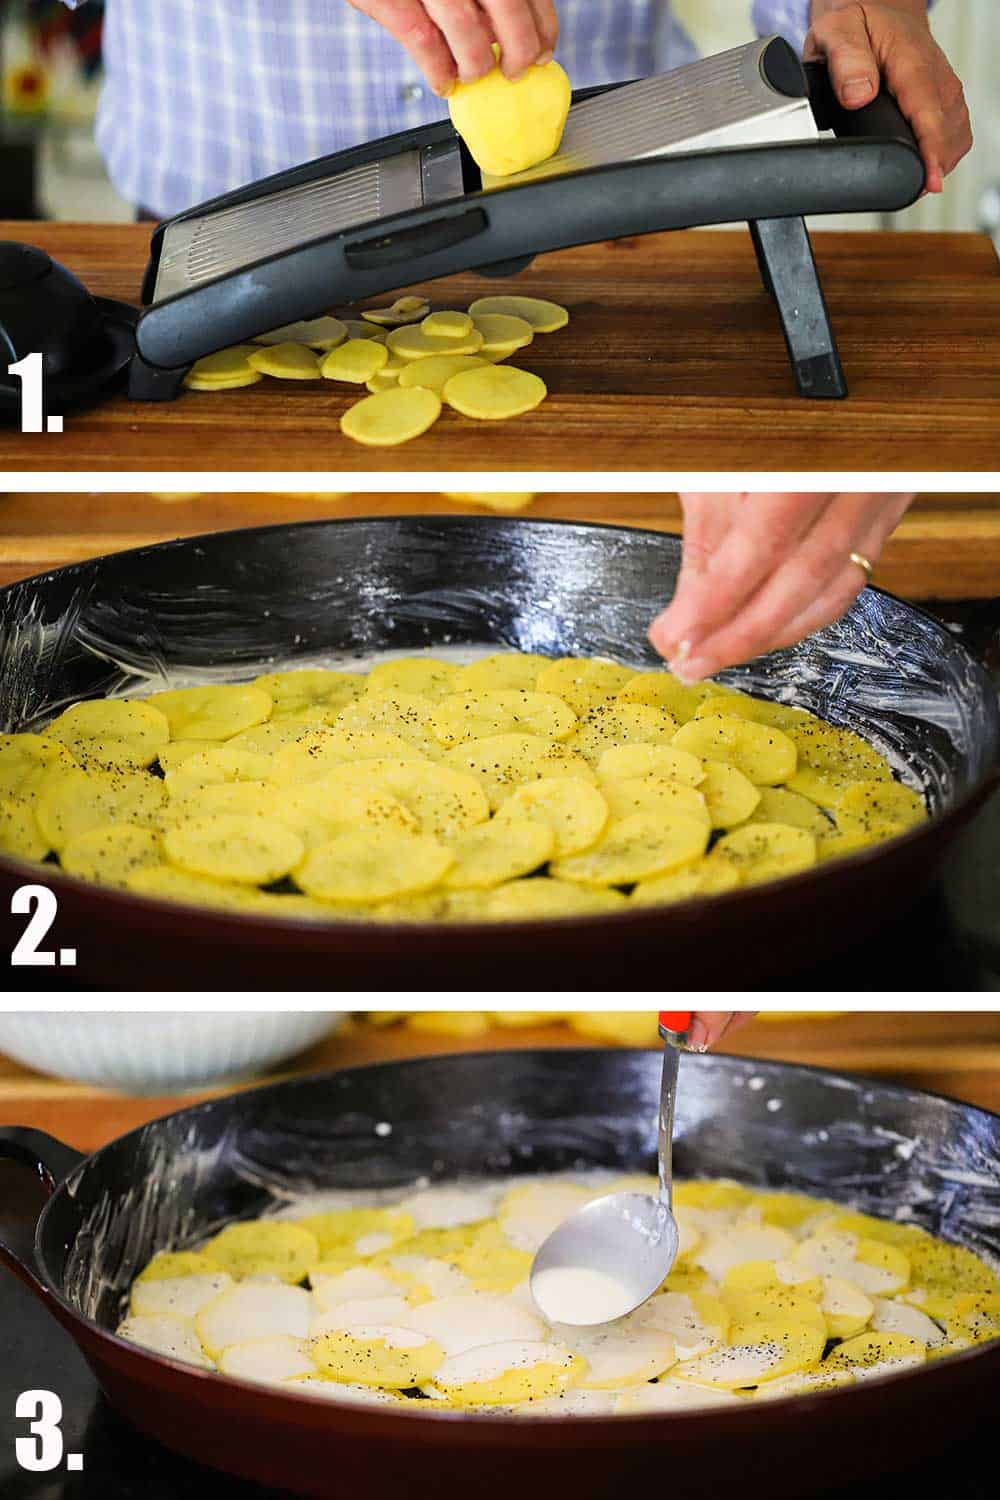 A person slicing a gold potato on a mandolin and then sprinkling salt over the layered potatoes in a dish and then ladling cream over them.